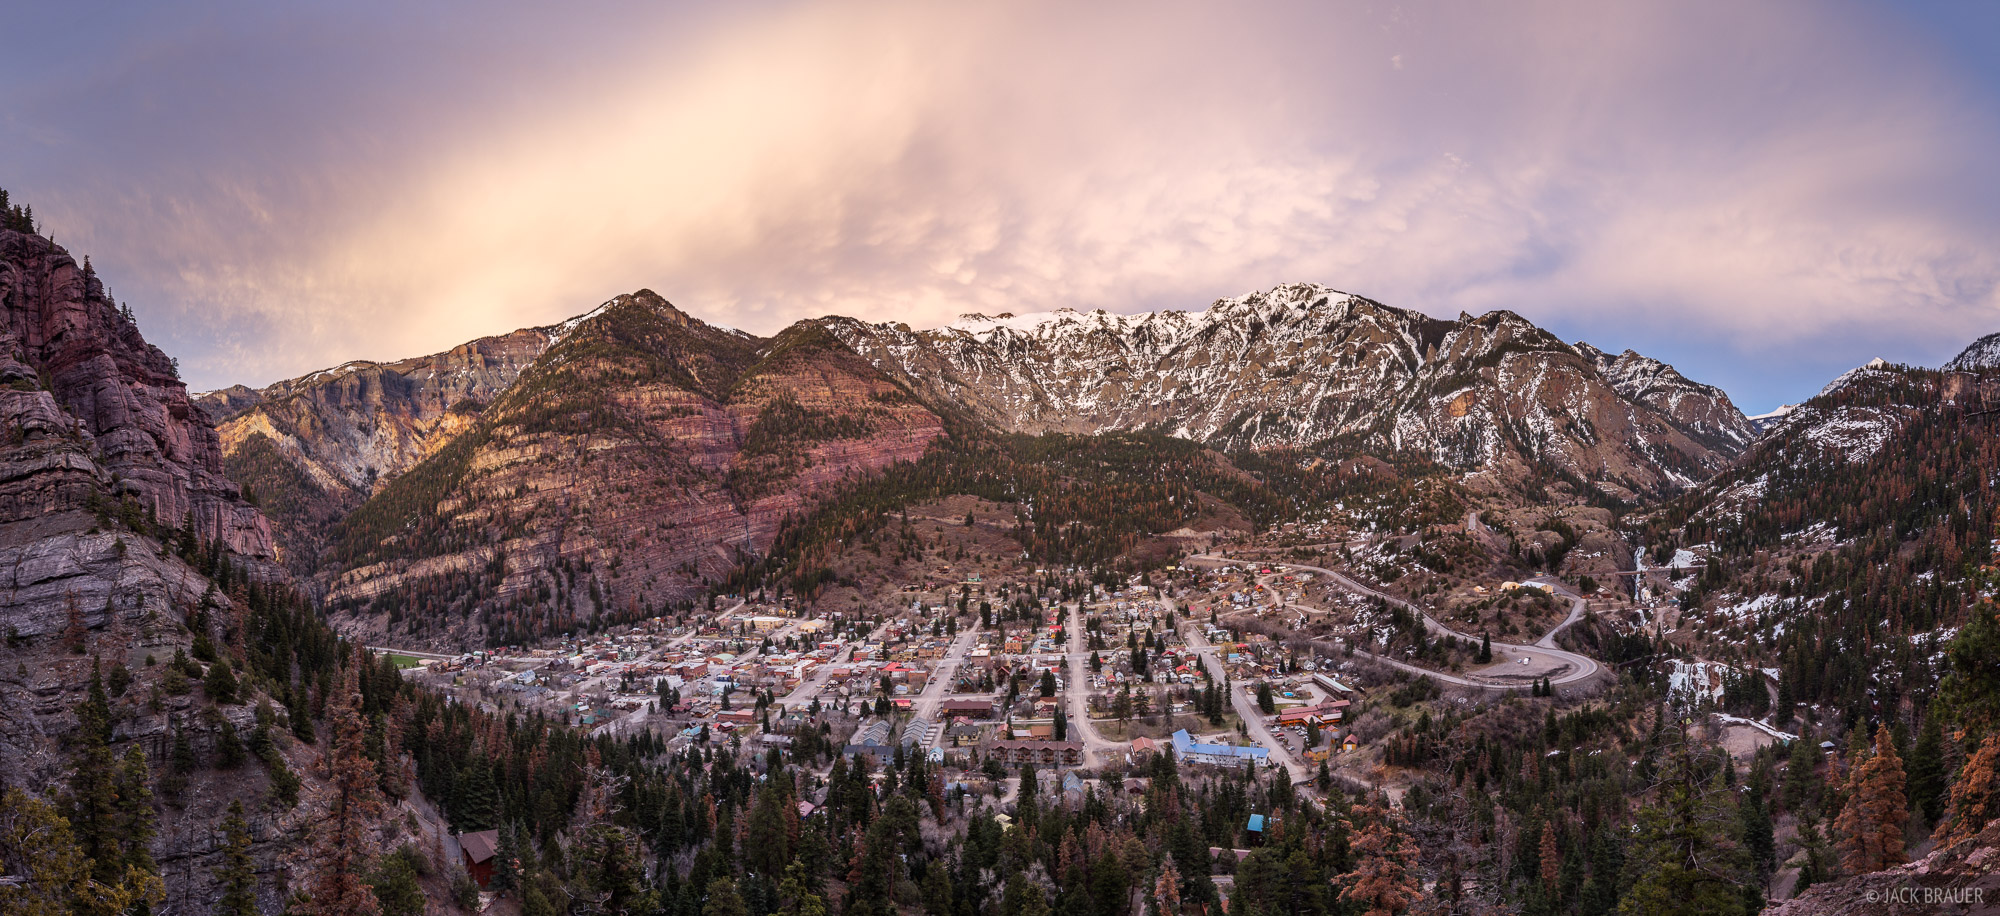 Colorado,Ouray,San Juan Mountains, sunset, panorama, photo